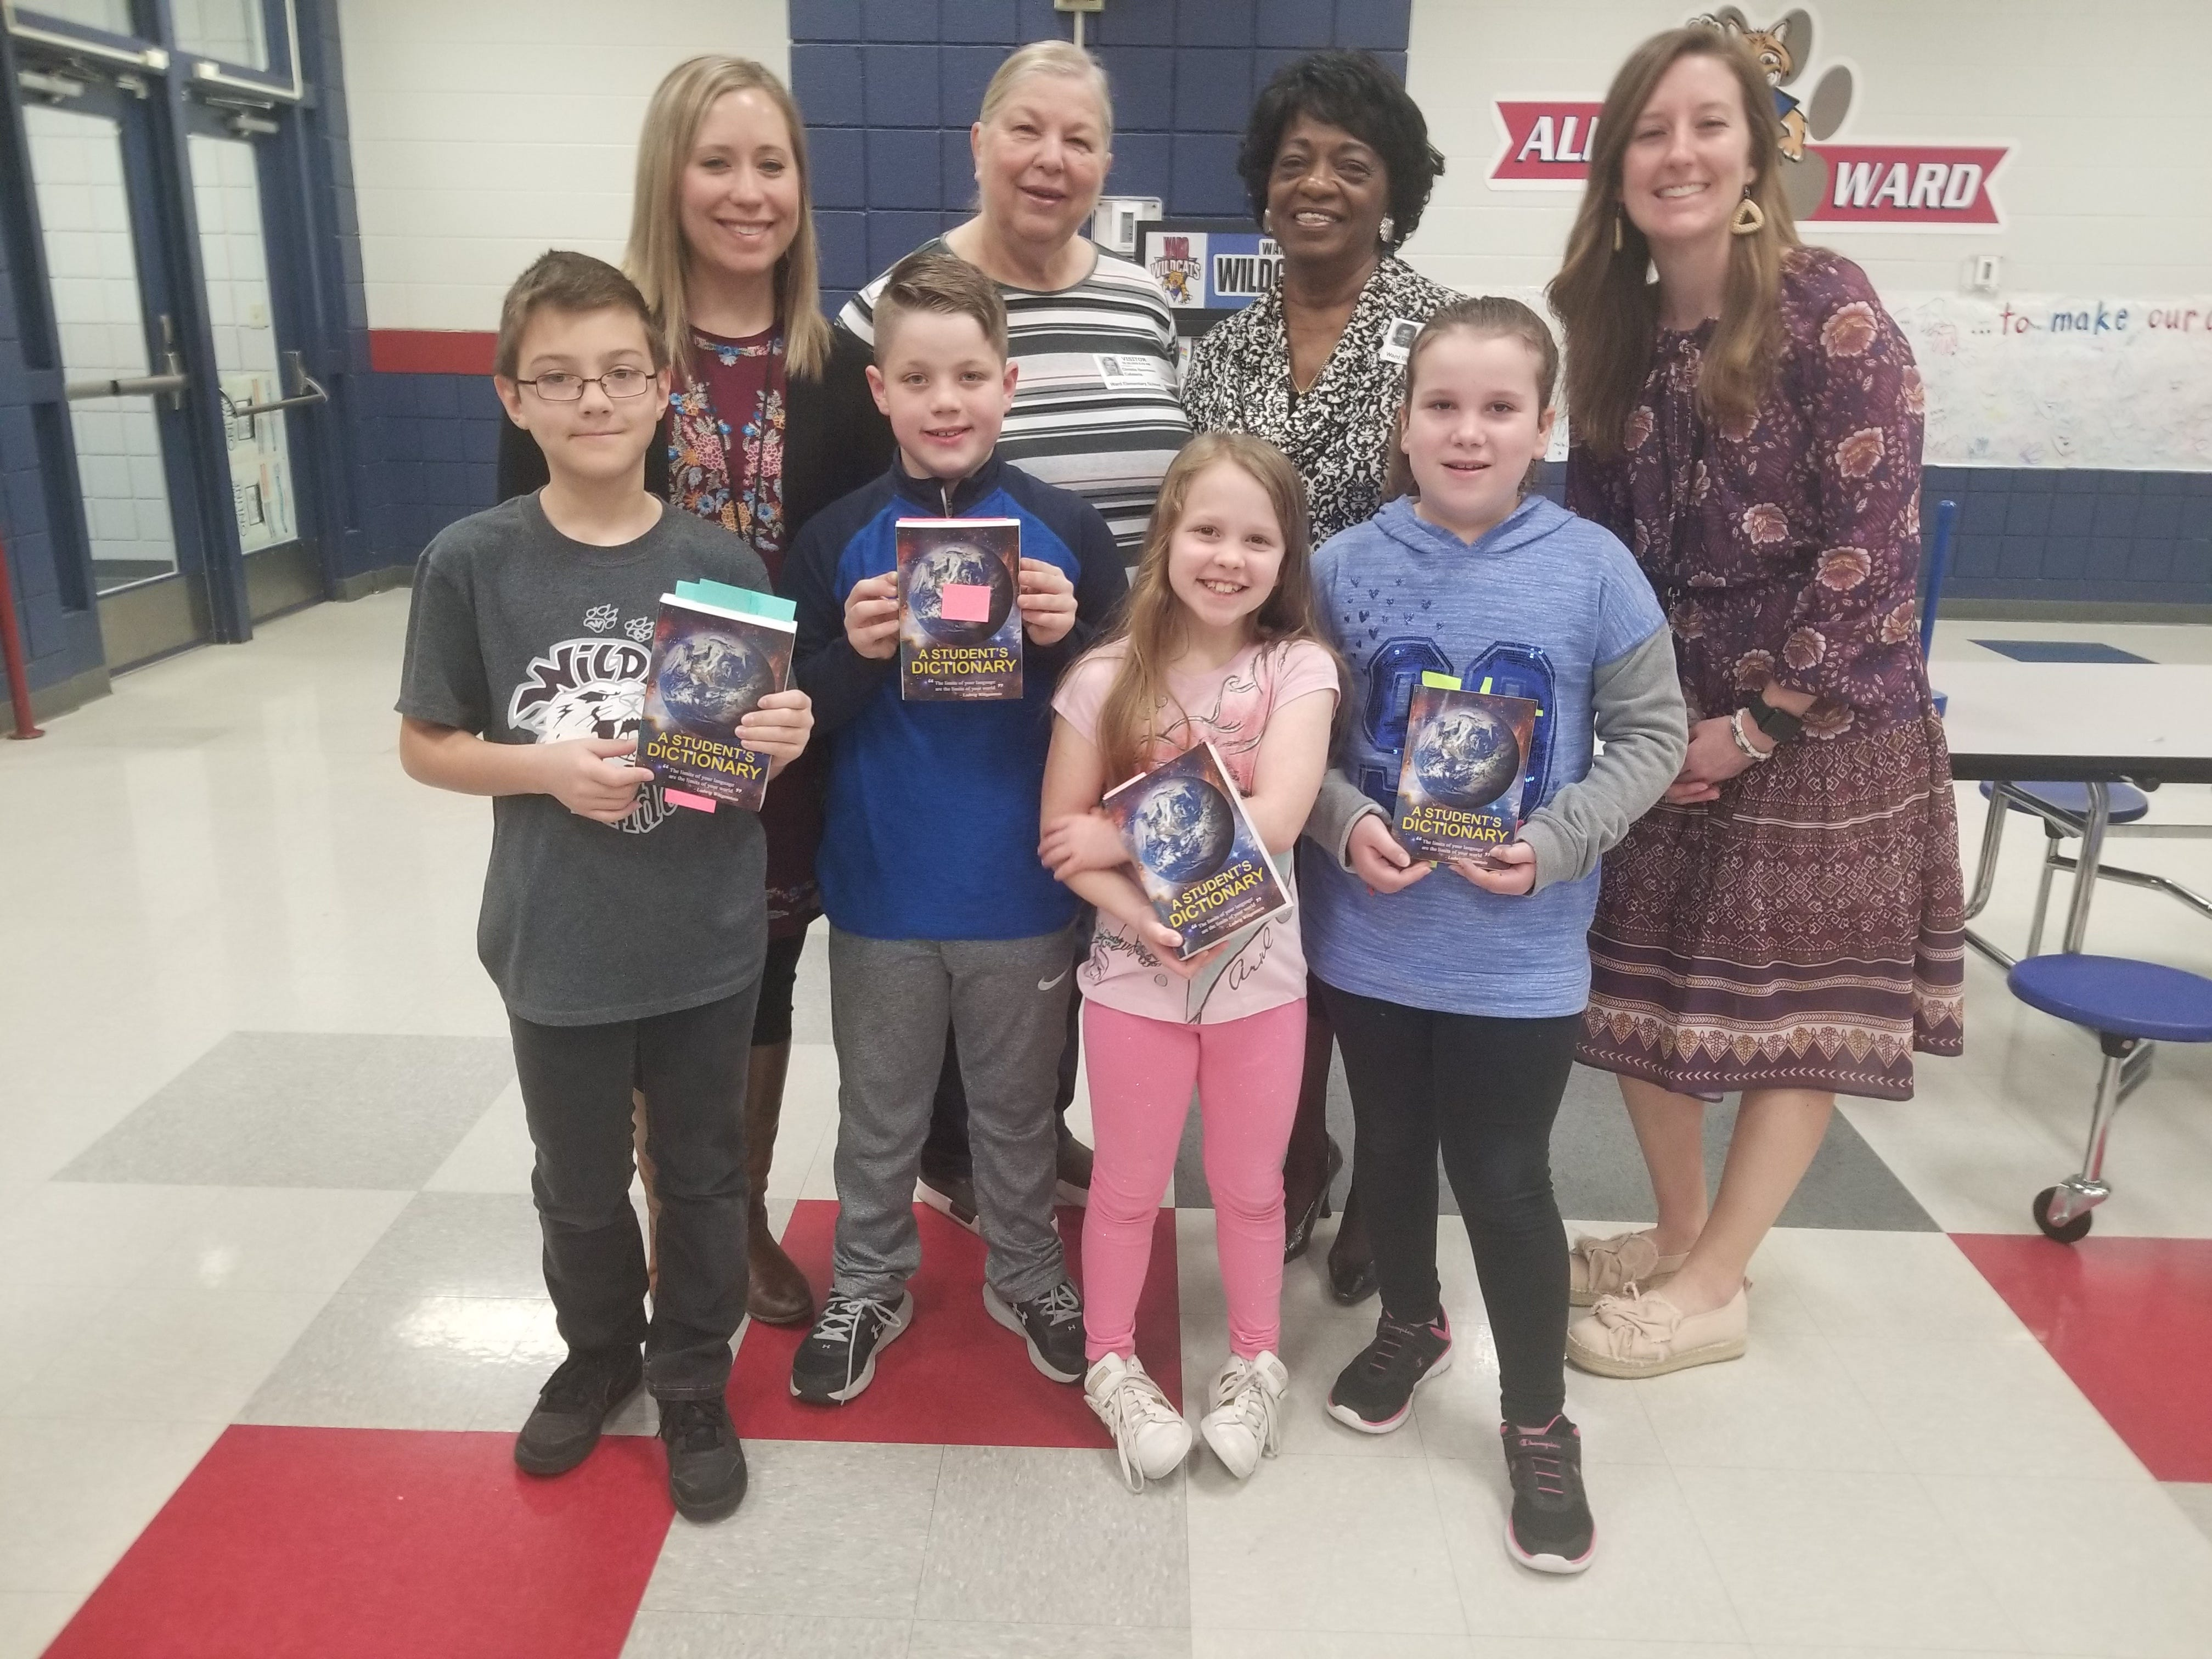 Members of Altrusa International of Abilene recently presented dictionaries to students at Ward Elementary School. Top row, from left: teacher Kaitlin Hoermann, Altrusans Christie Beermann and Dorothy Drones, and teacher Shelly Muzechenko.